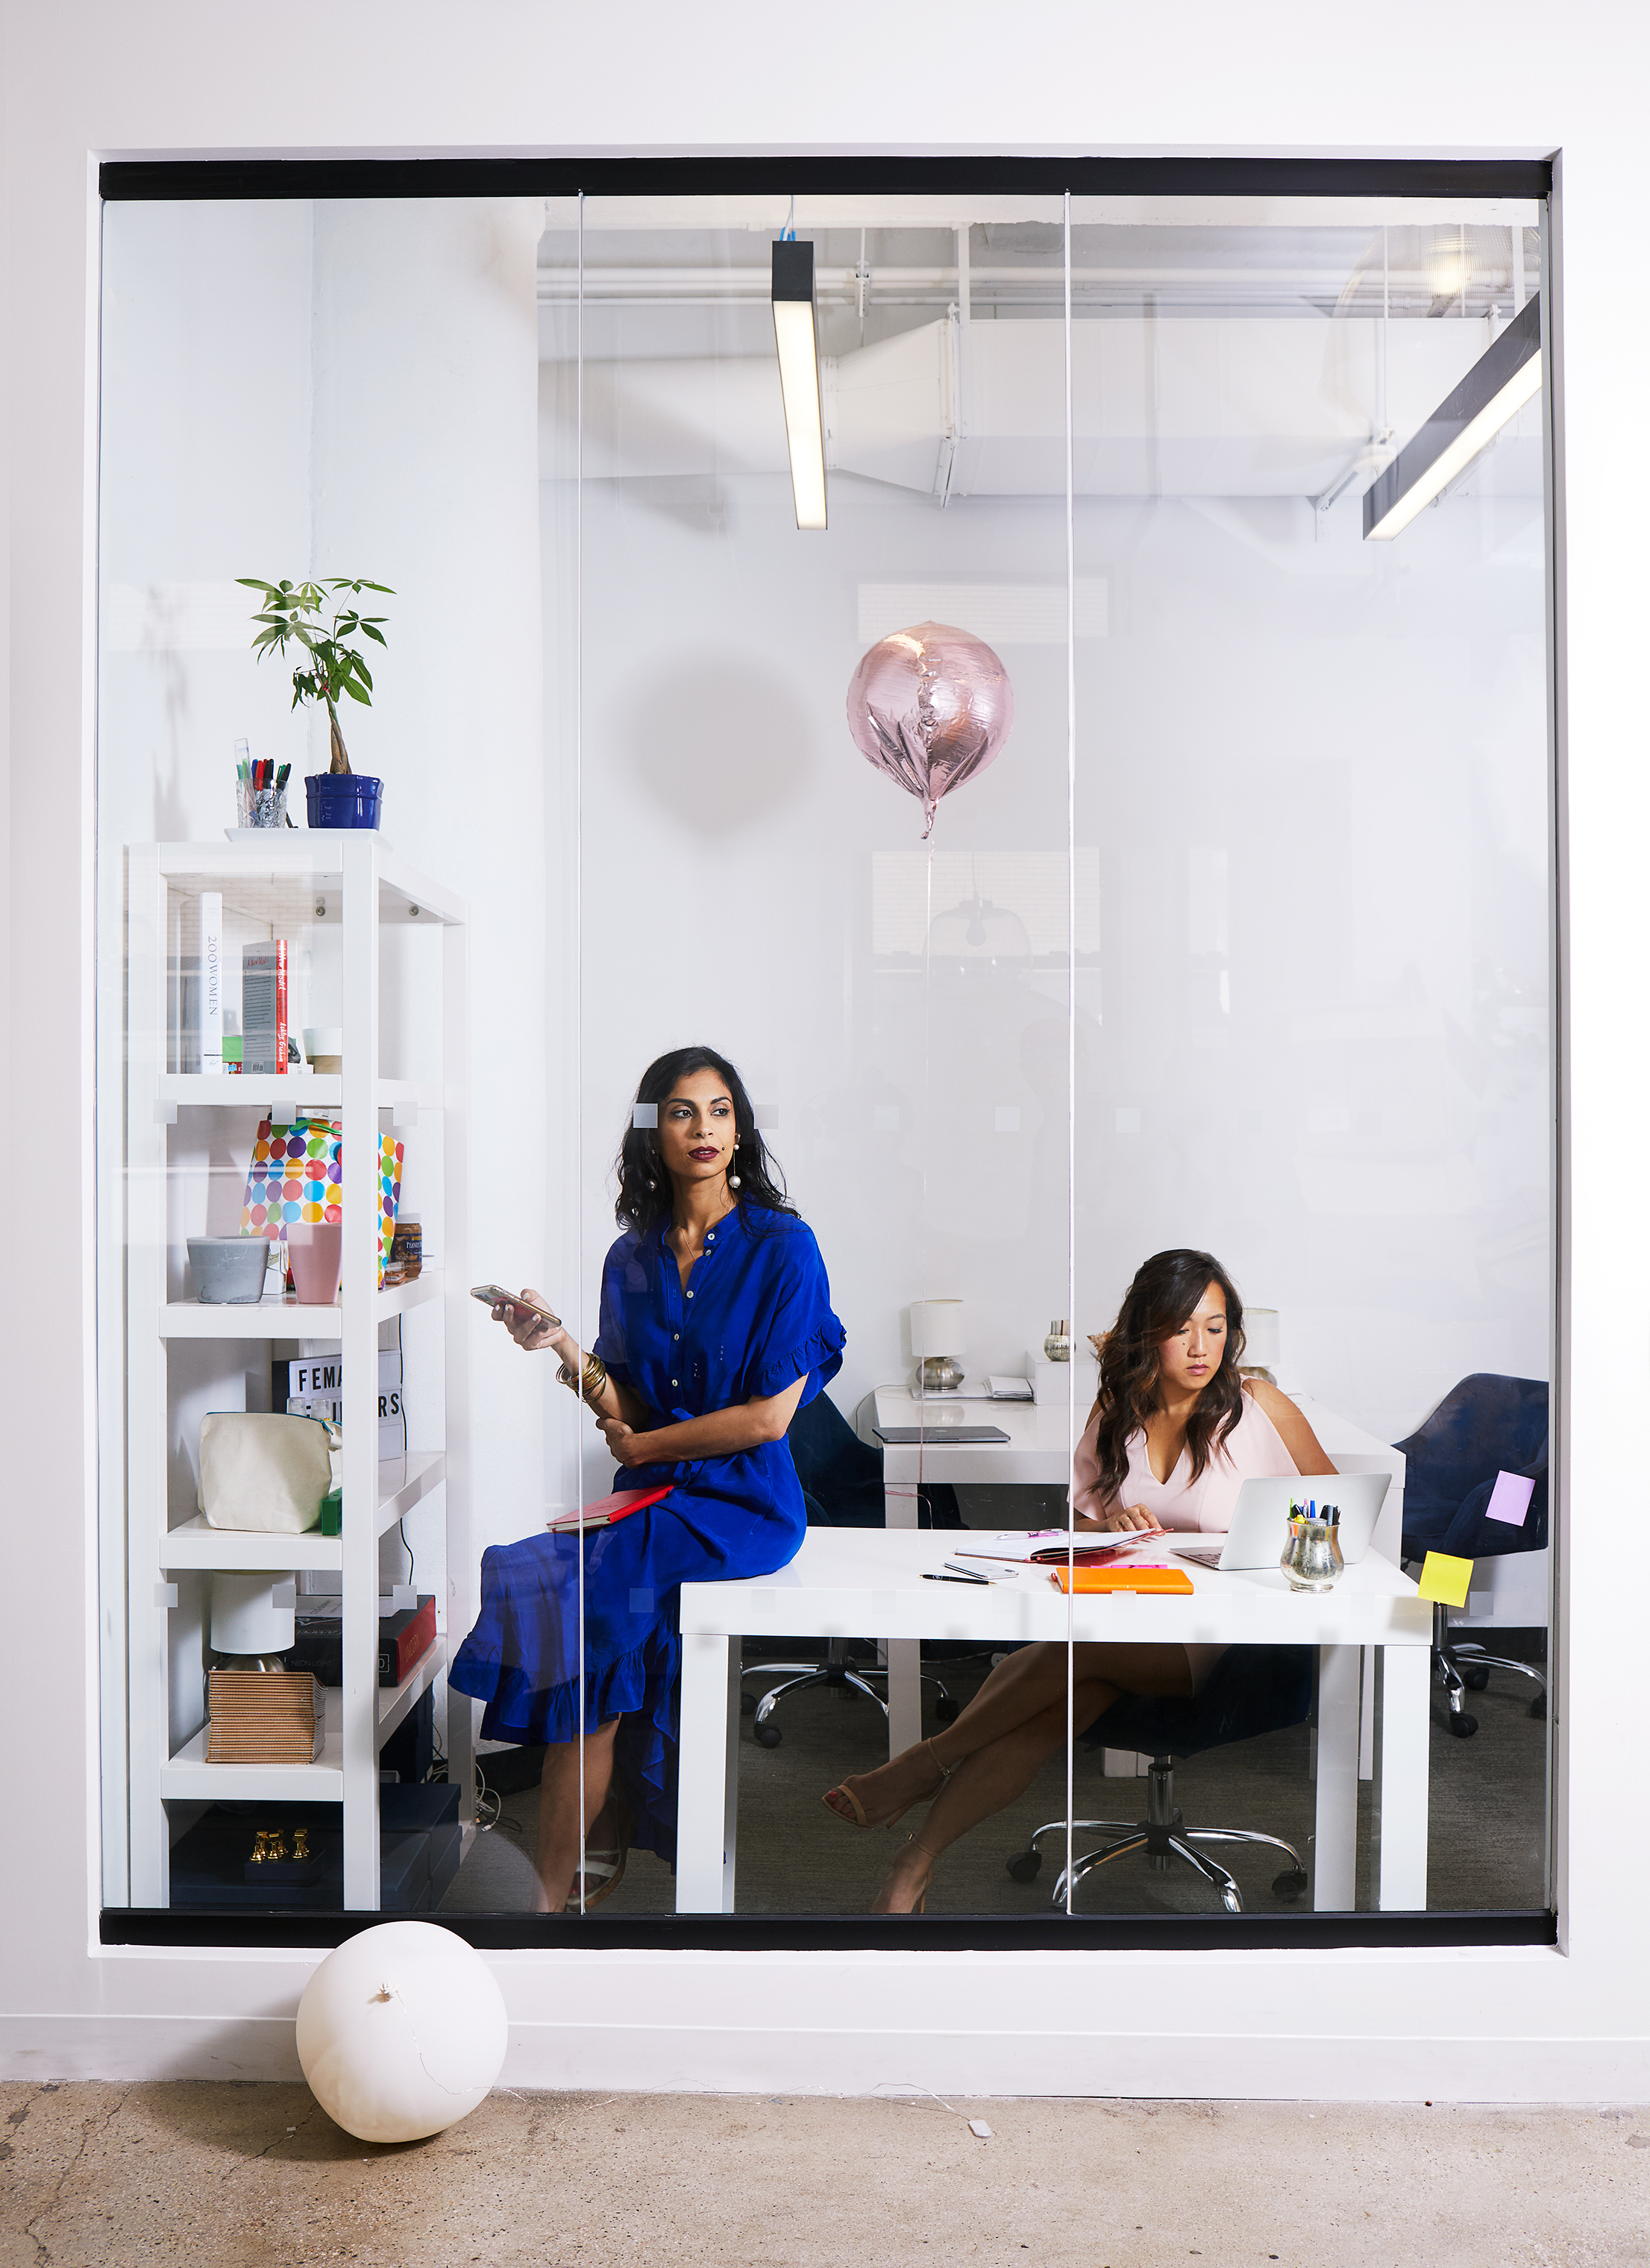 Anu Duggal and Sutian Dong, partners behind the Female Founders Fund, in their office in a hip co-working space in New York City.